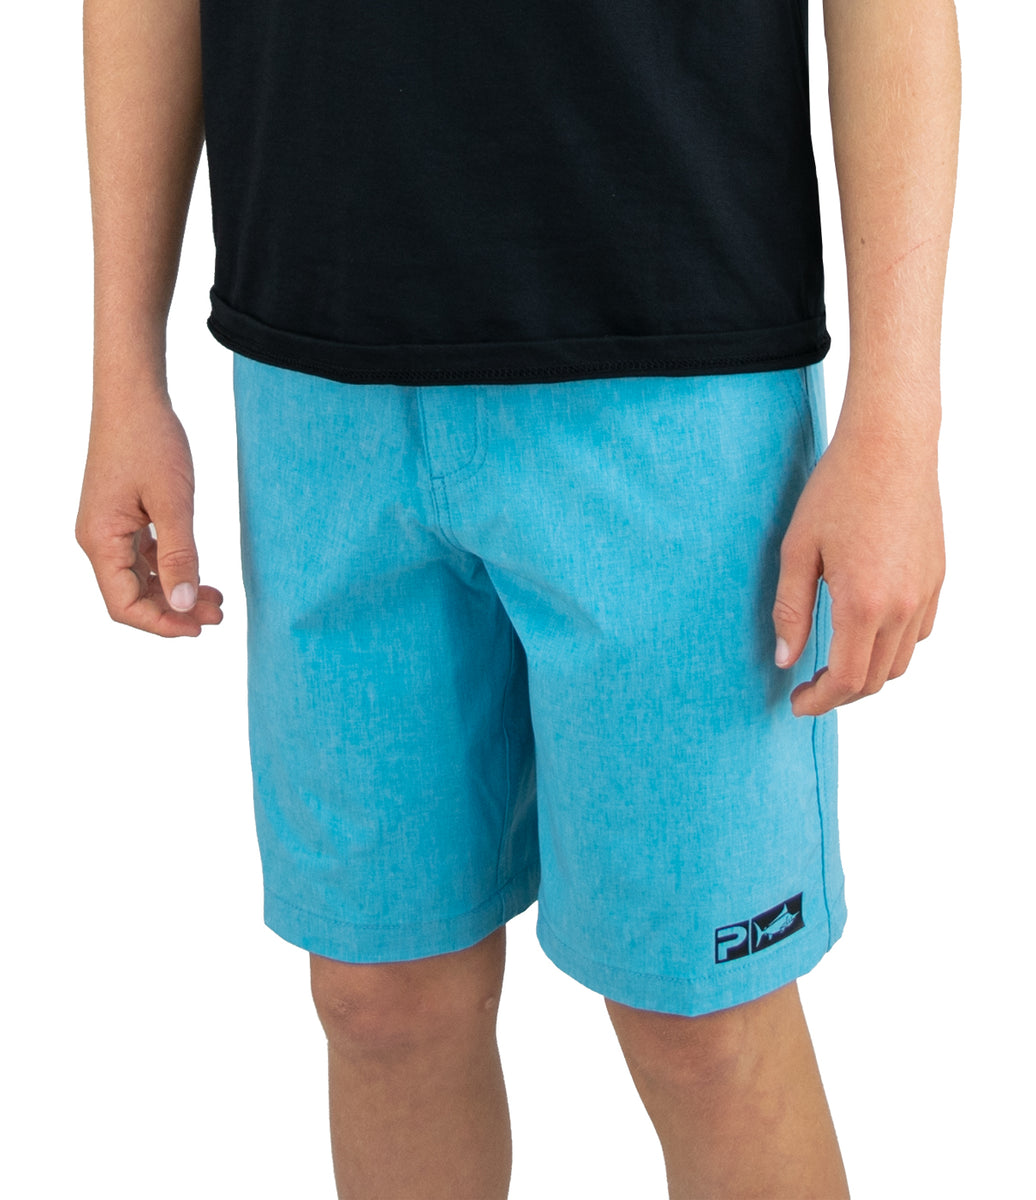 Deep Sea Hybrid Fishing Shorts - Youth Big Image - 4